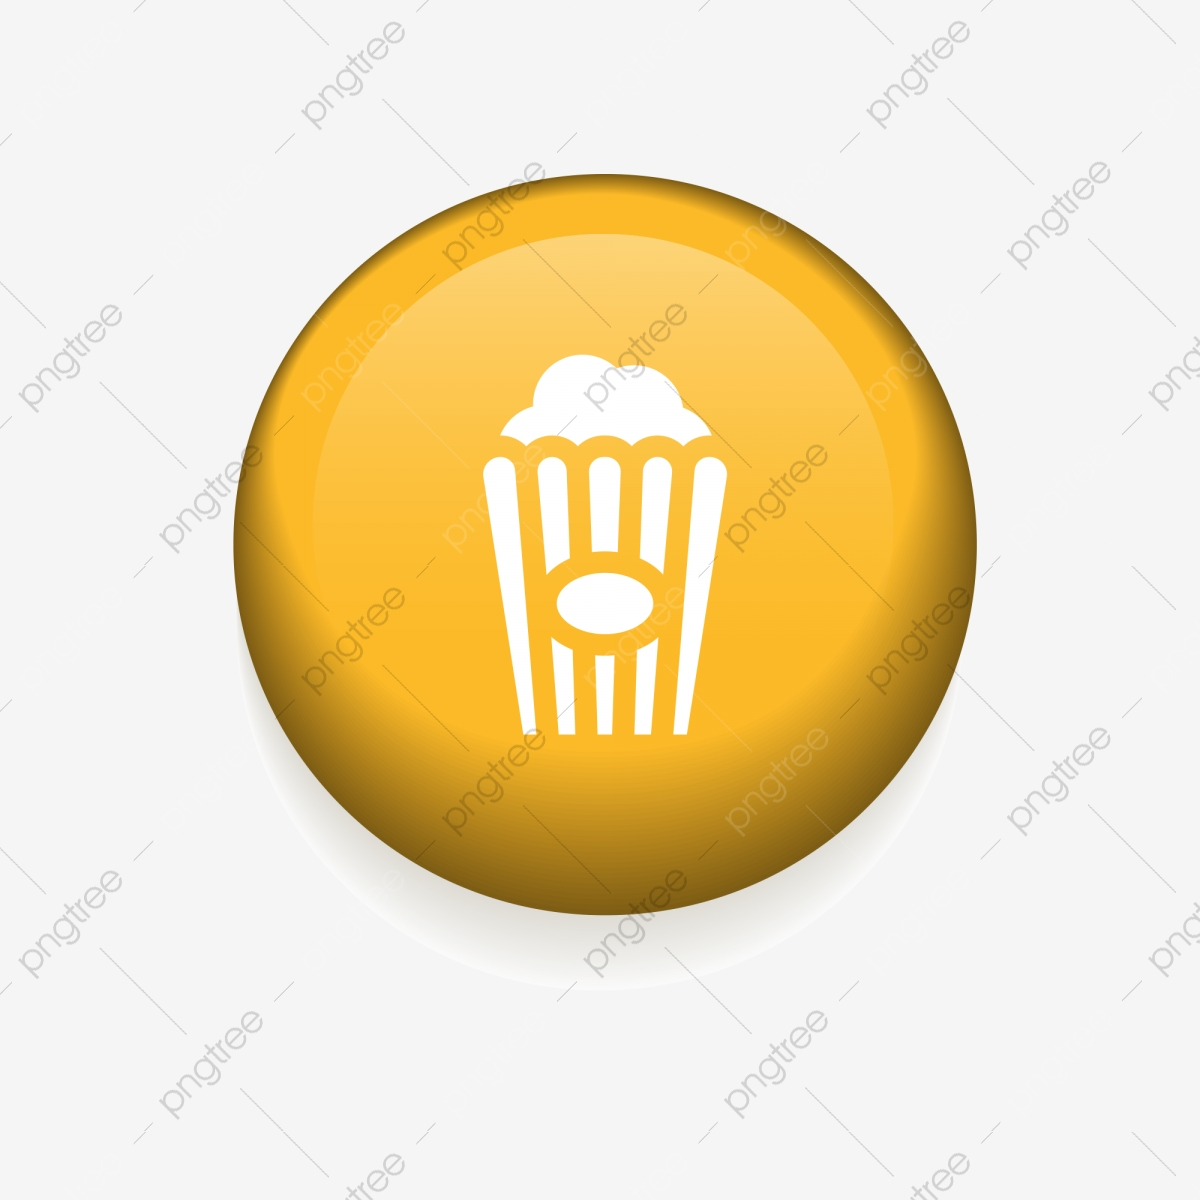 cartoon popcorn icon download snack icon popcorn casual icon png transparent clipart image and psd file for free download pngtree